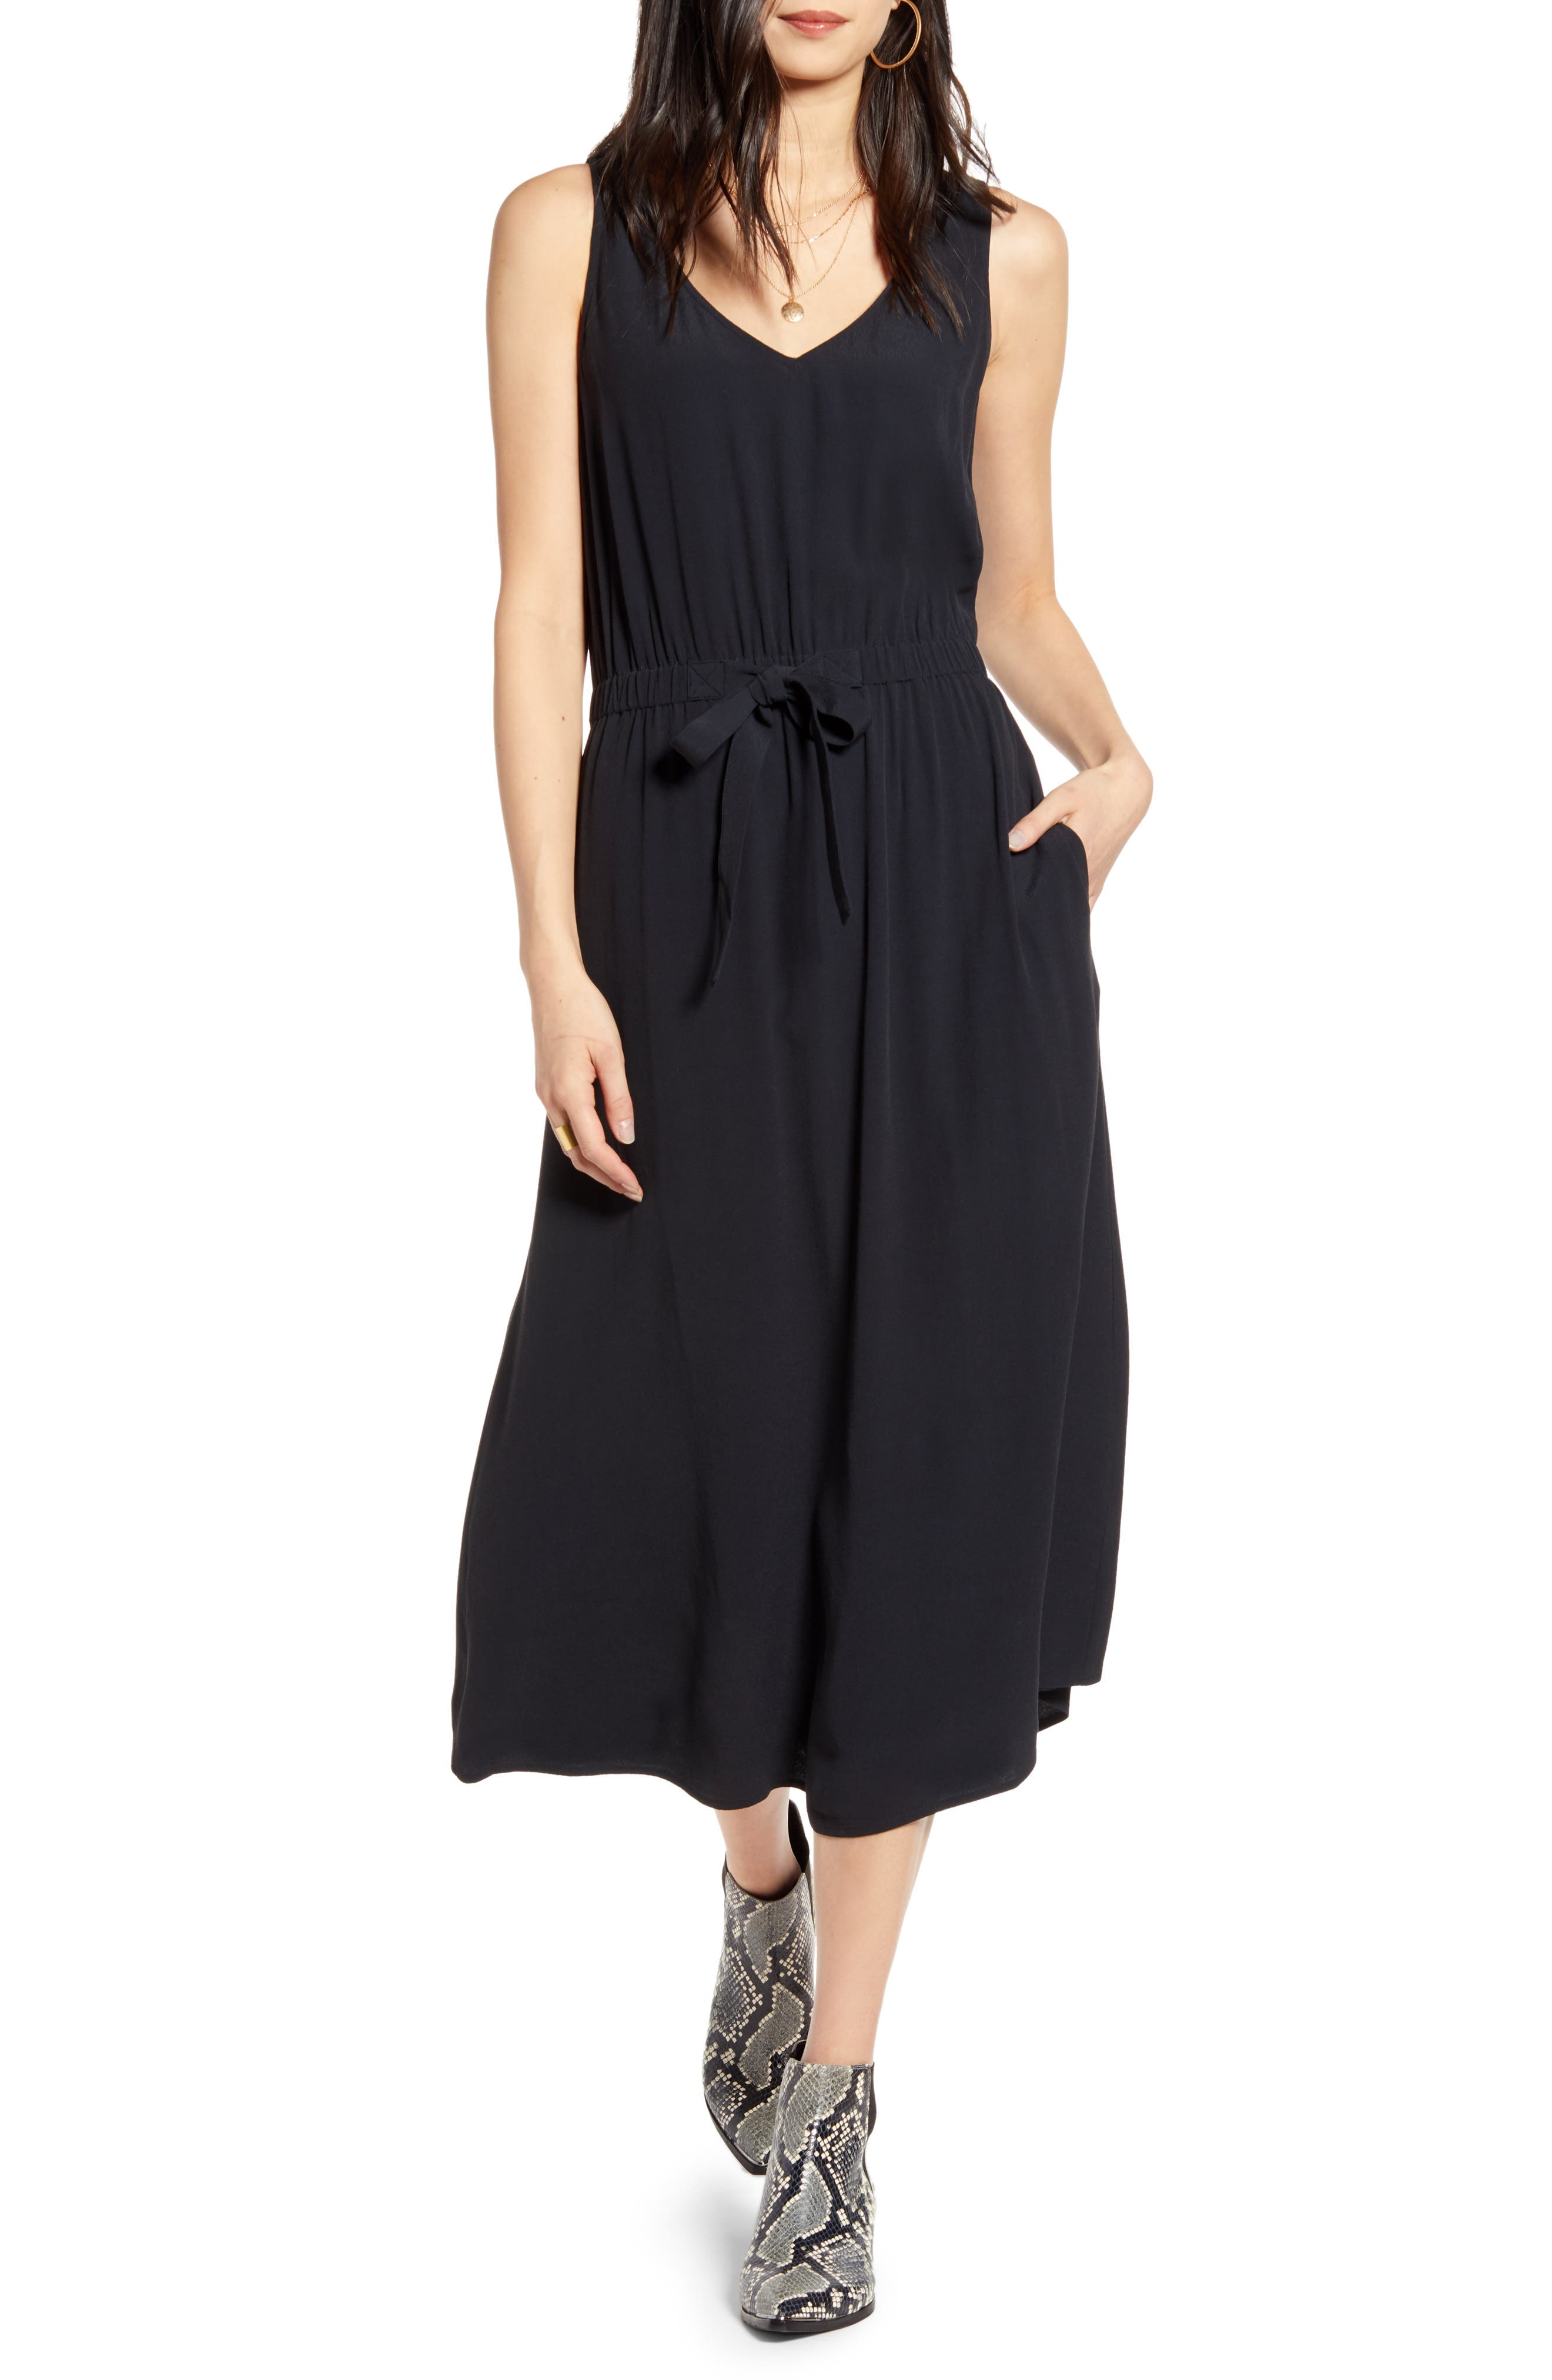 Easy and polished, this sleeveless tie-waist midi takes you from brunches to vacations to date nights. When you buy Treasure & Bond, Nordstrom will donate 2.5% of net sales to organizations that work to empower youth. Style Name: Treasure & Bond Sleeveless Tie Waist Midi Dress. Style Number: 5948910. Available in stores.